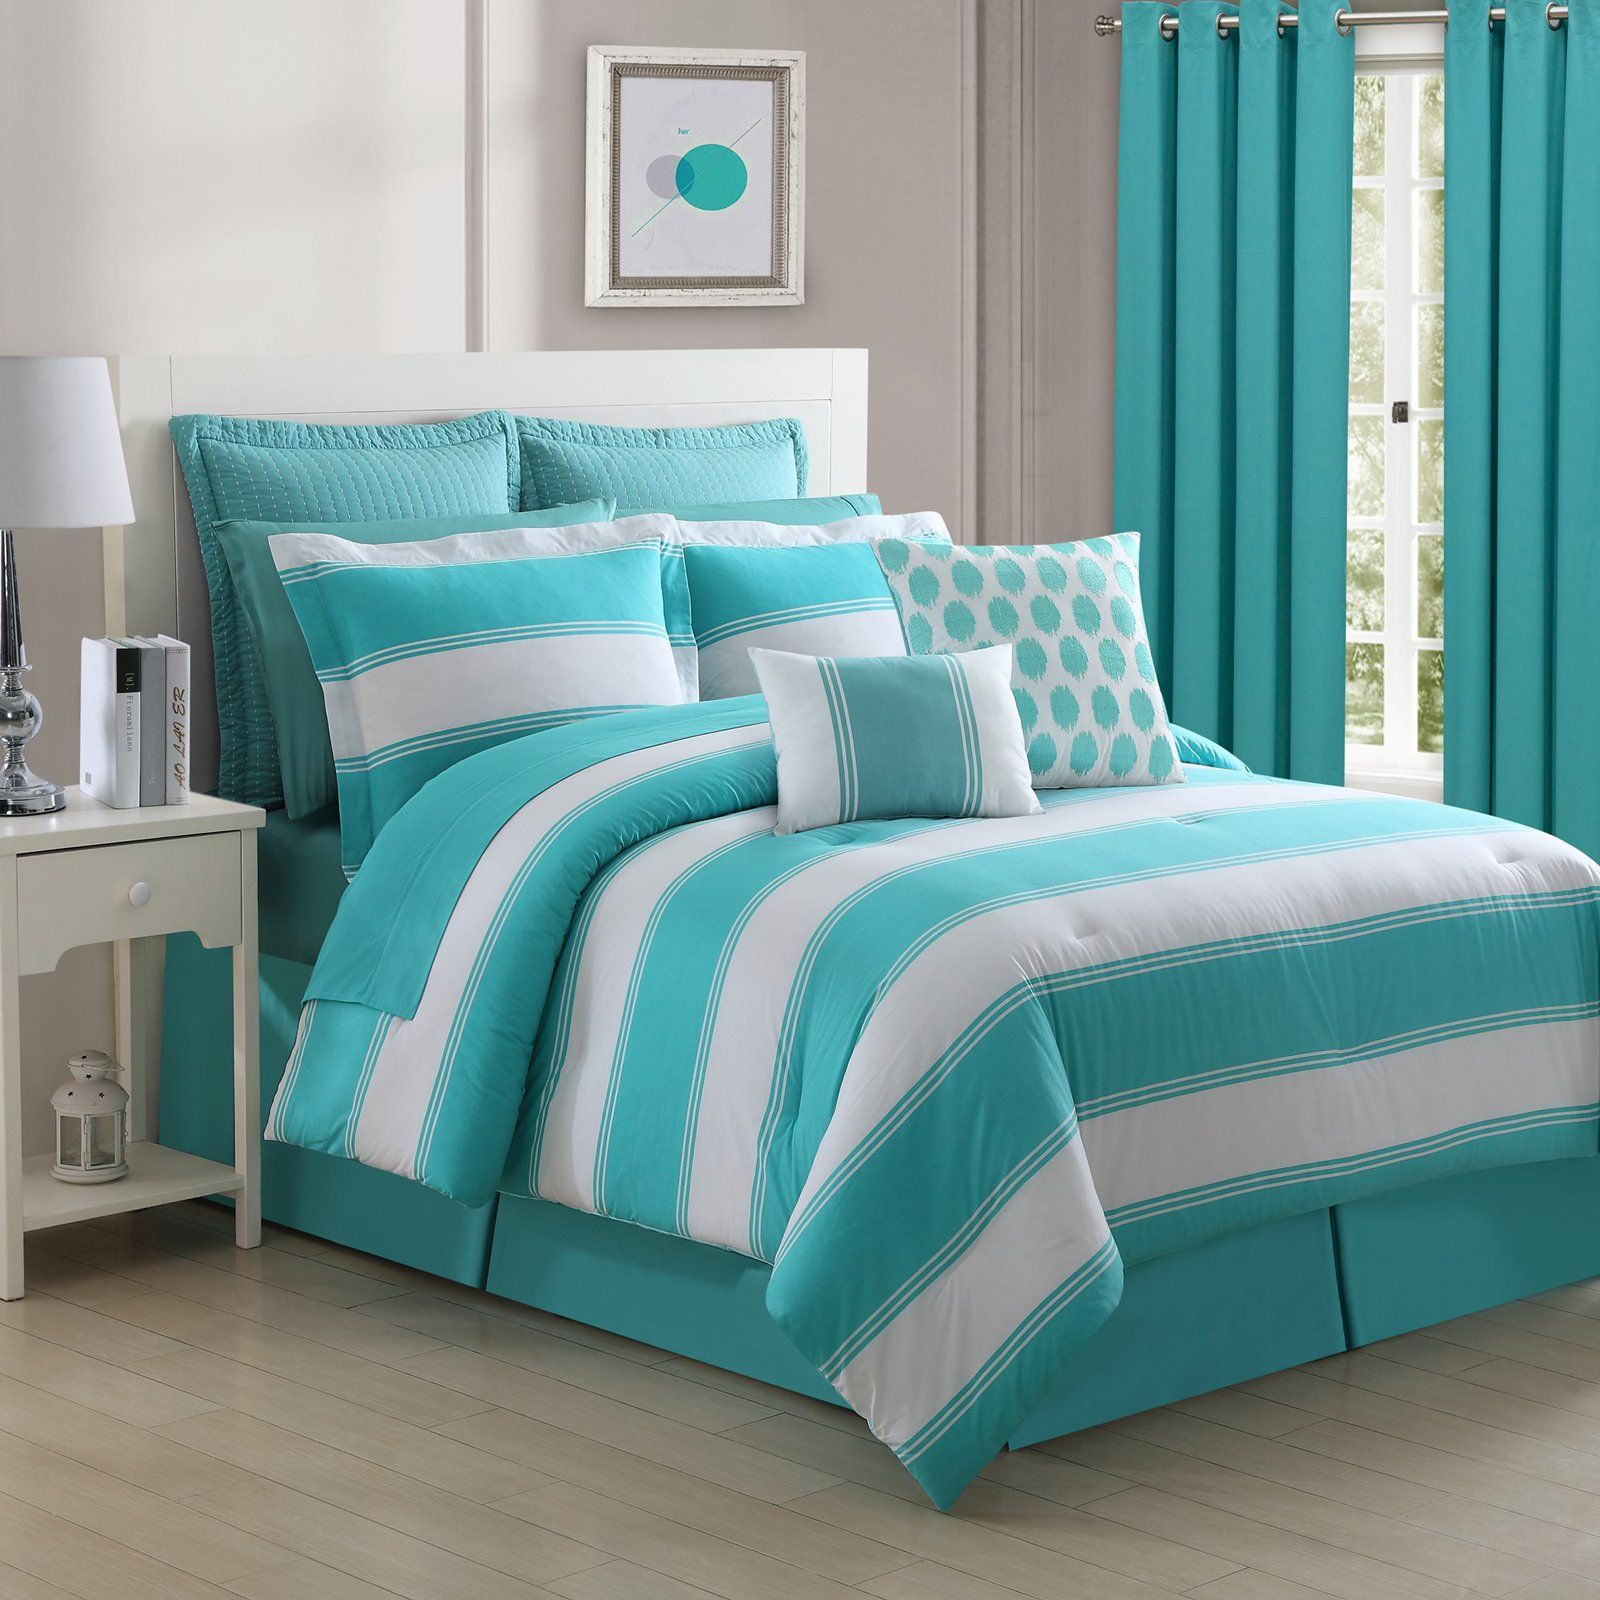 Cabana Reversible 200tc Stripe Comforter Set By Fiesta Bedding